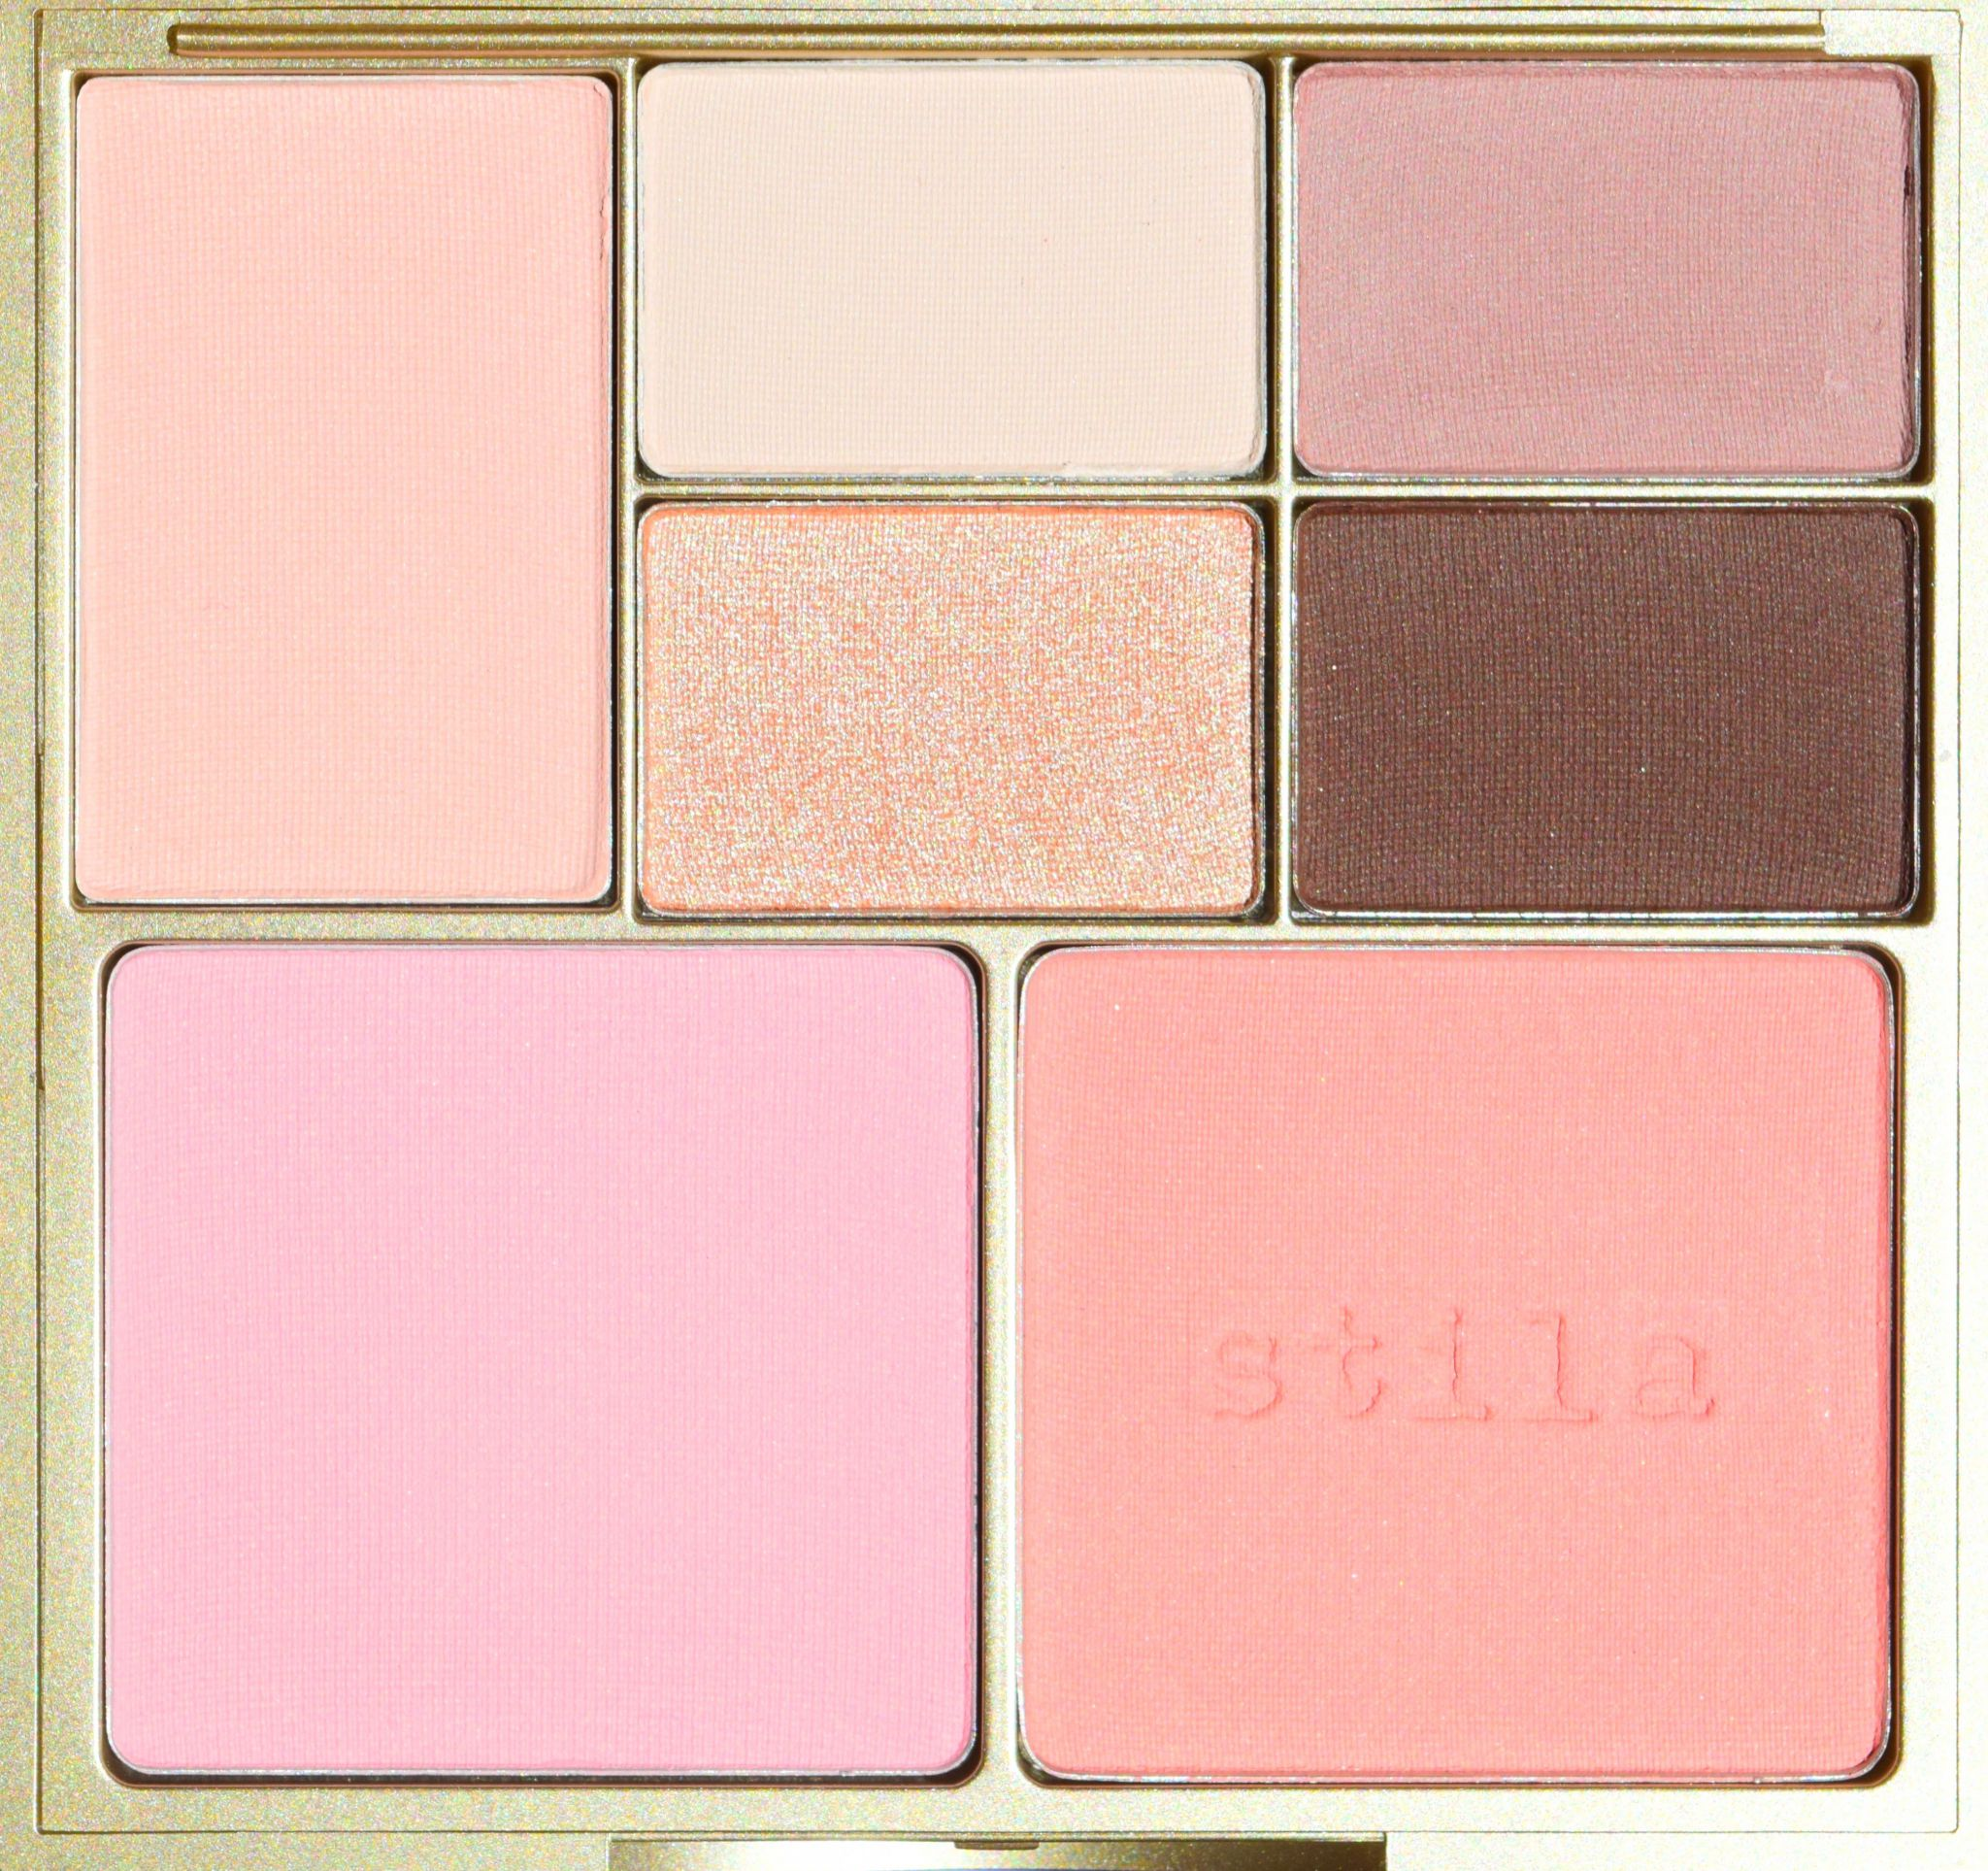 stila-perfect-me-perfect-hue-eye-and-cheek-palette